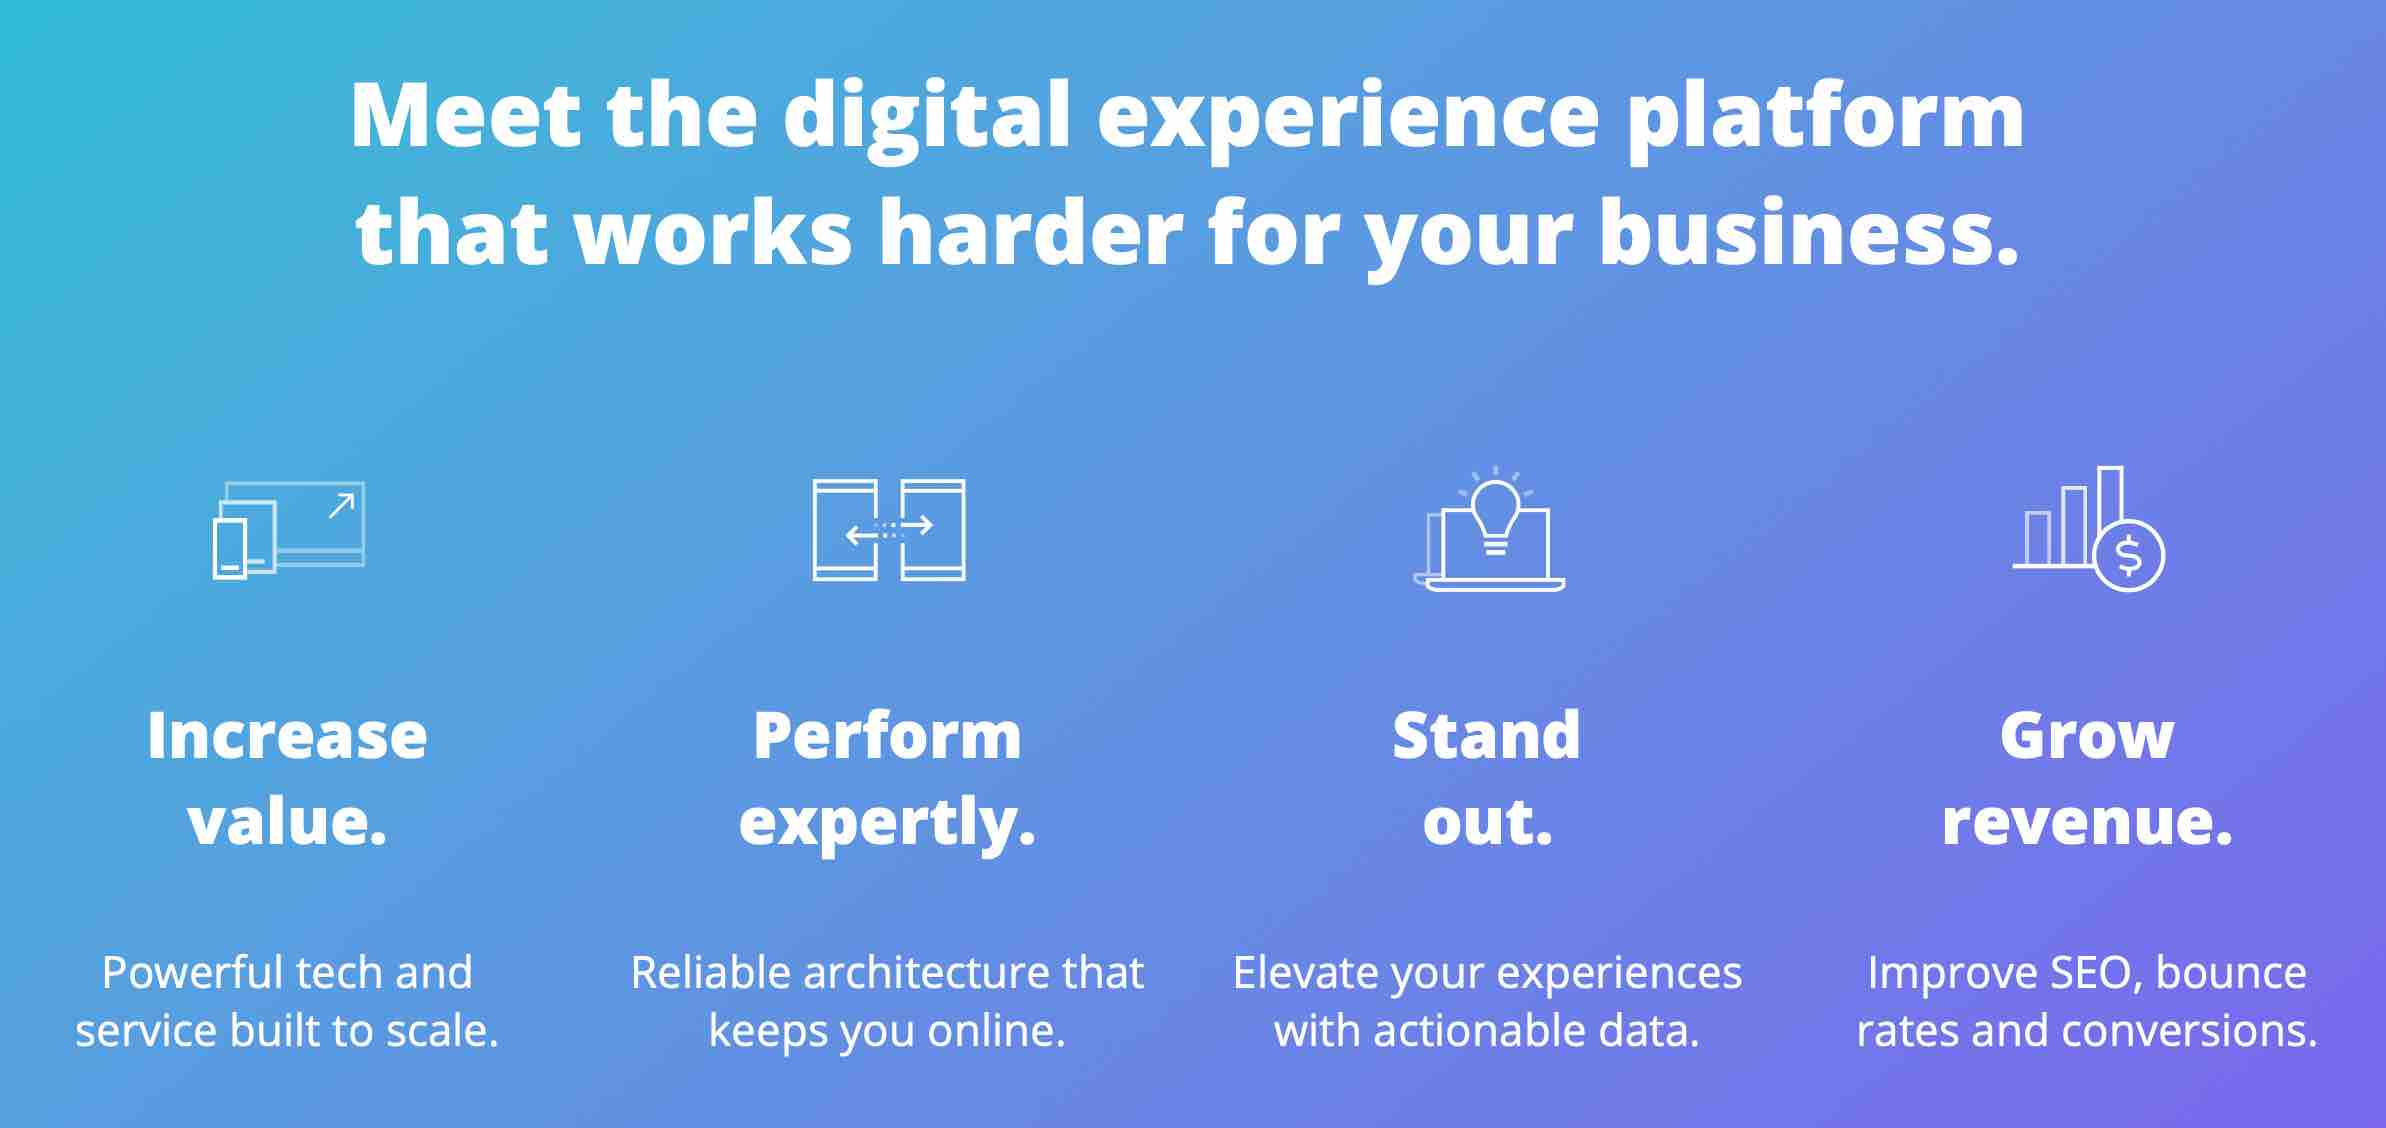 Meet the digital experience platform that works harder for your business